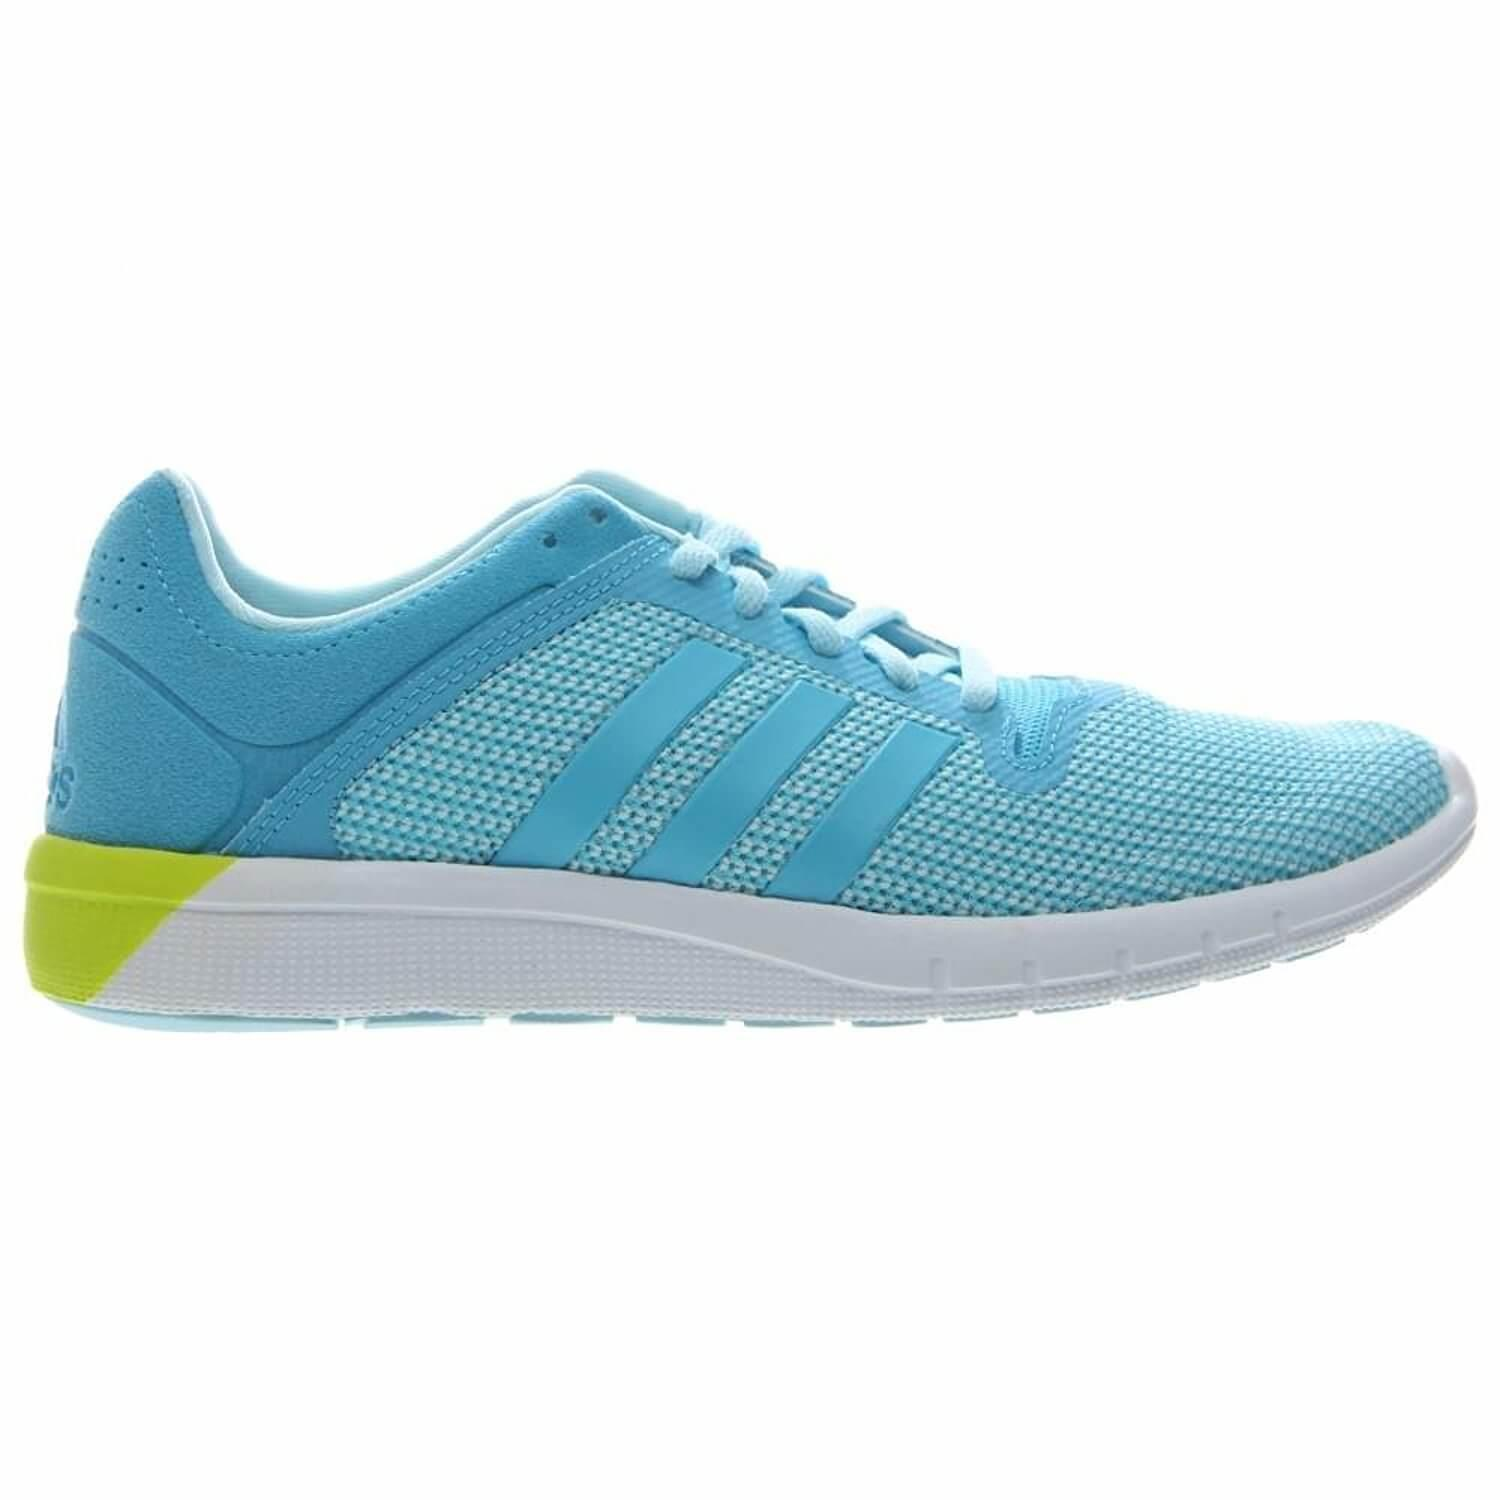 adidas climacool fresh 2 0 to buy or not in may 2018. Black Bedroom Furniture Sets. Home Design Ideas